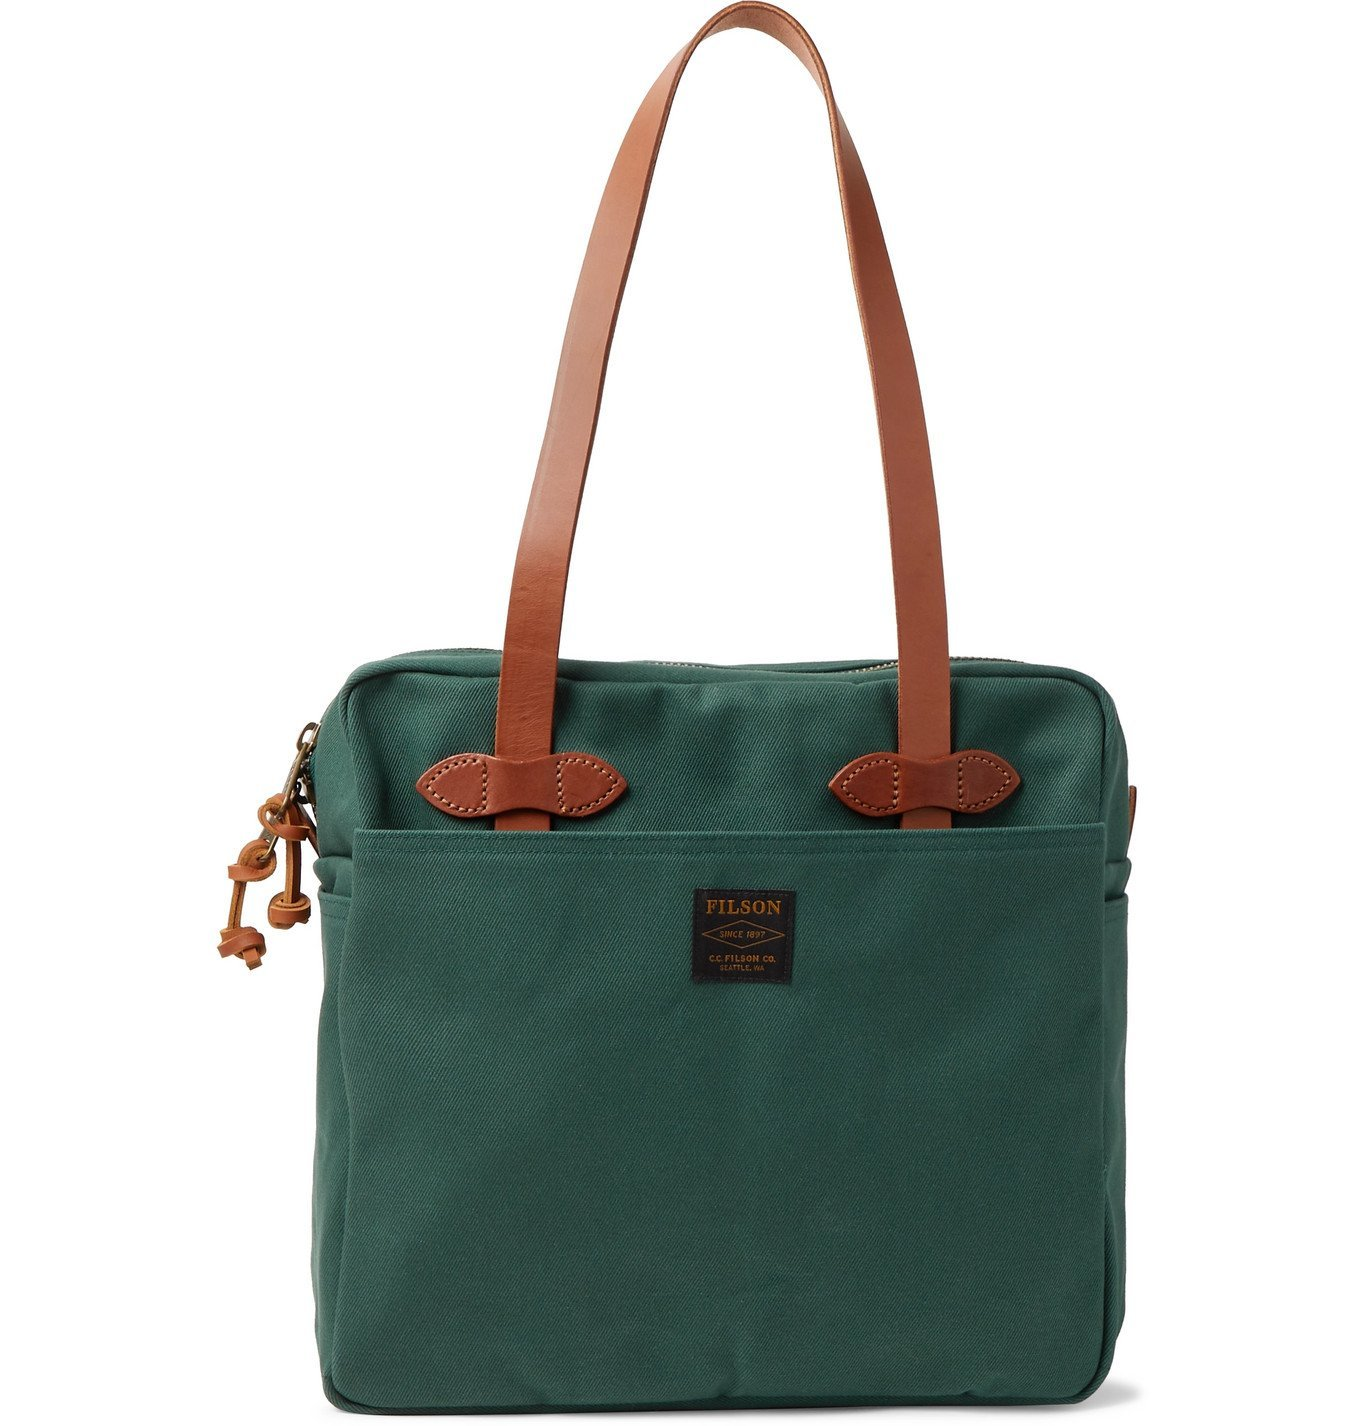 Filson - Leather-Trimmed Cotton-Twill Briefcase - Green